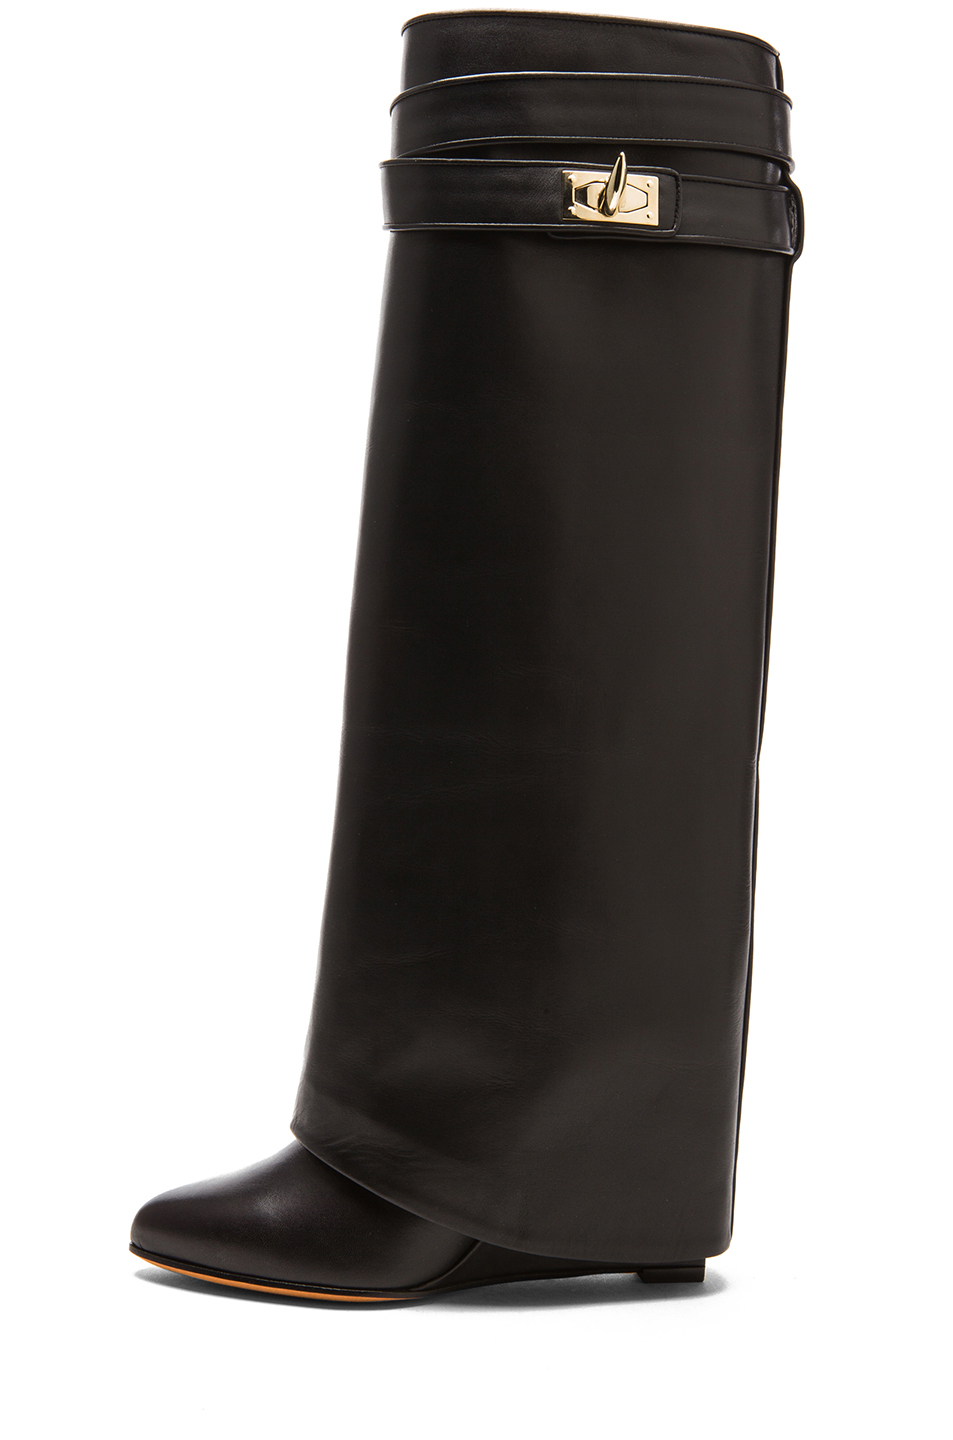 Givenchy Shark Lock Tall Leather Pant Boots In Black Lyst